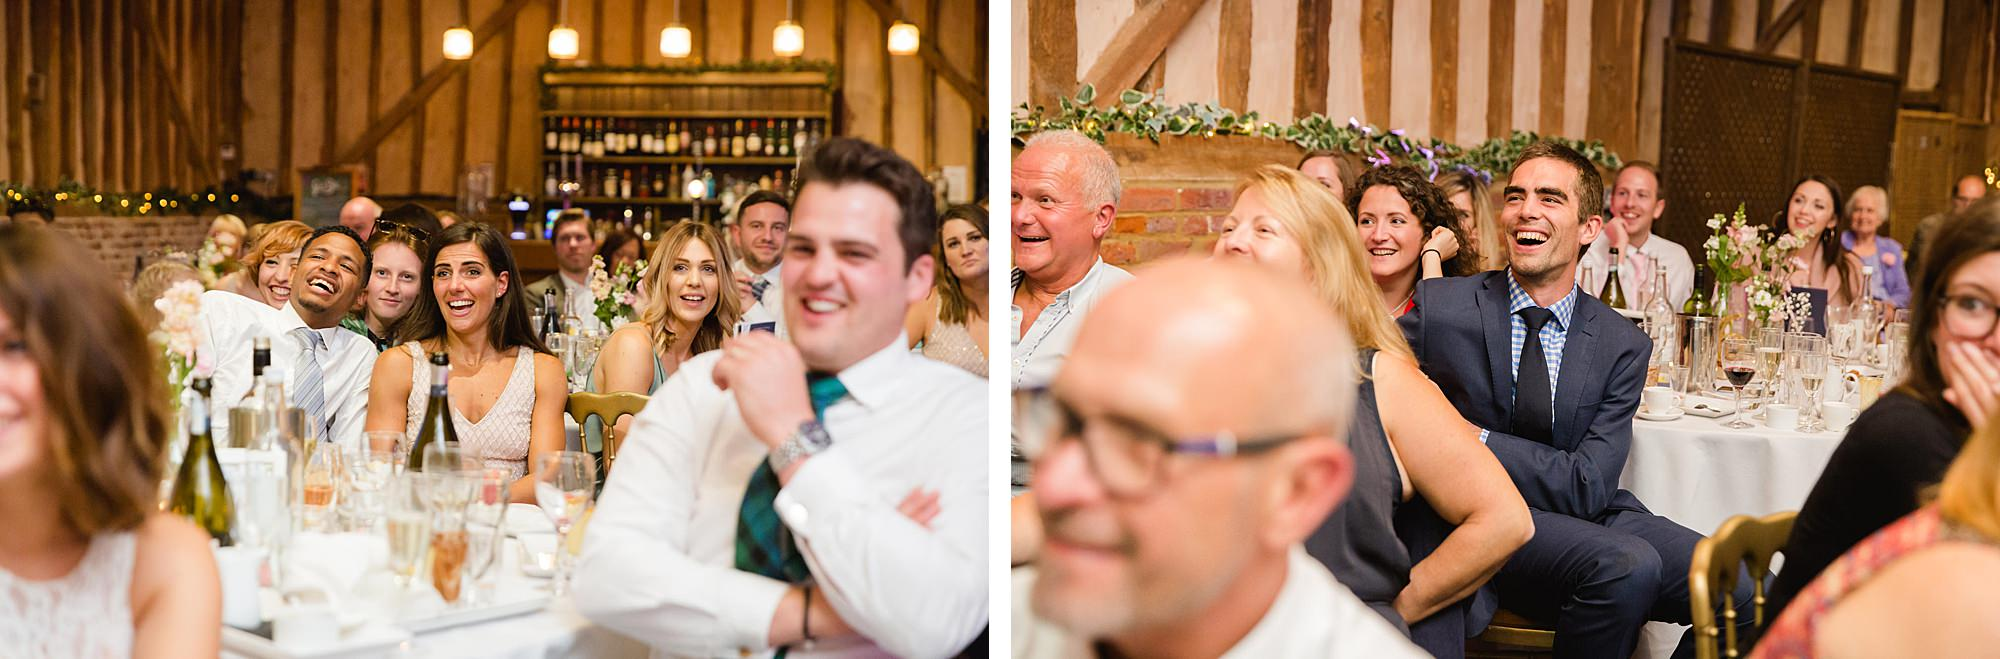 Lillibrooke Manor wedding guests laughing at best man's speech